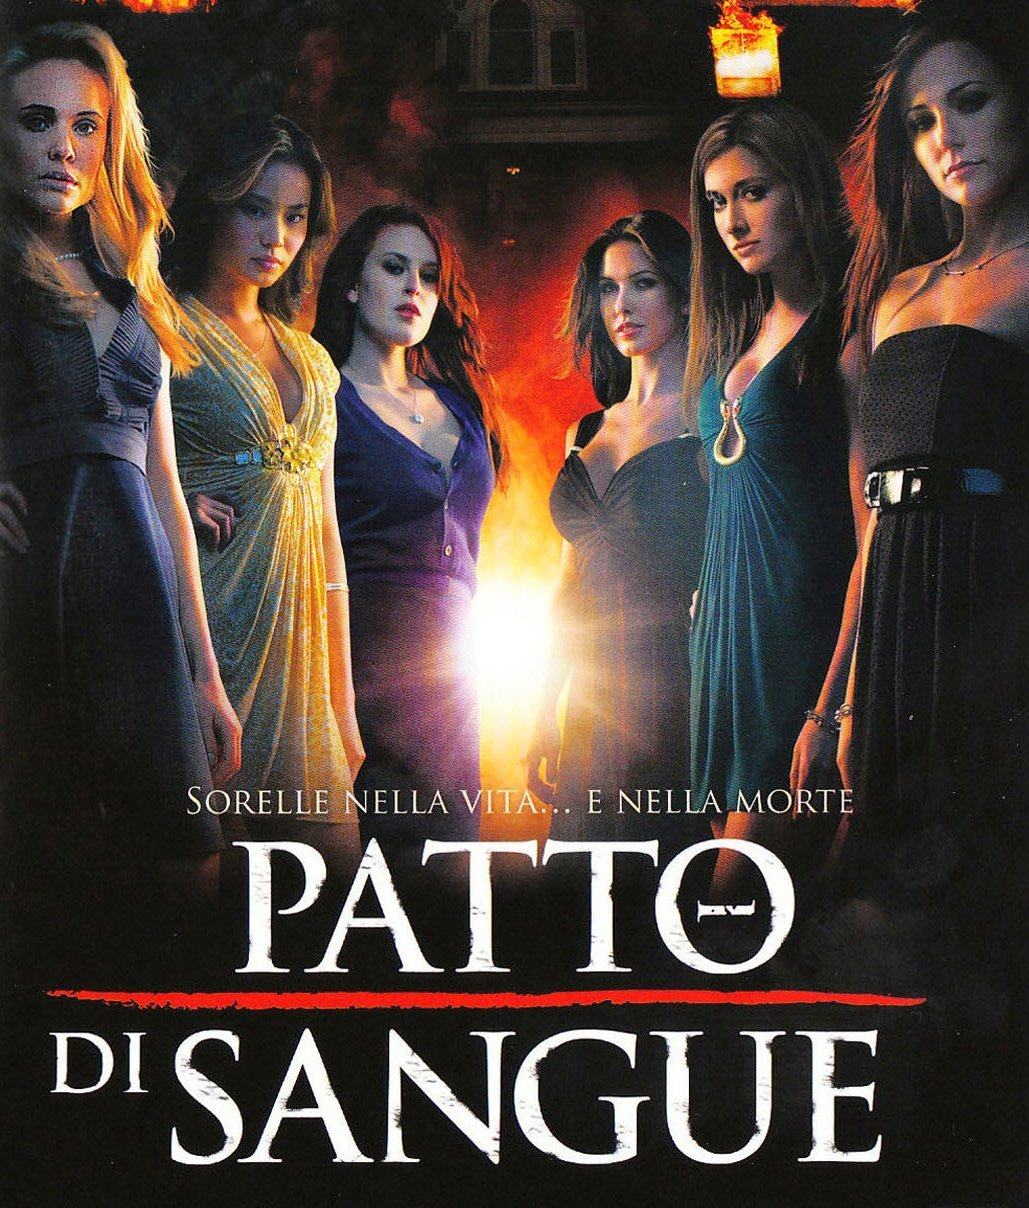 Video E Trailer Di Patto Di Sangue Screenweek